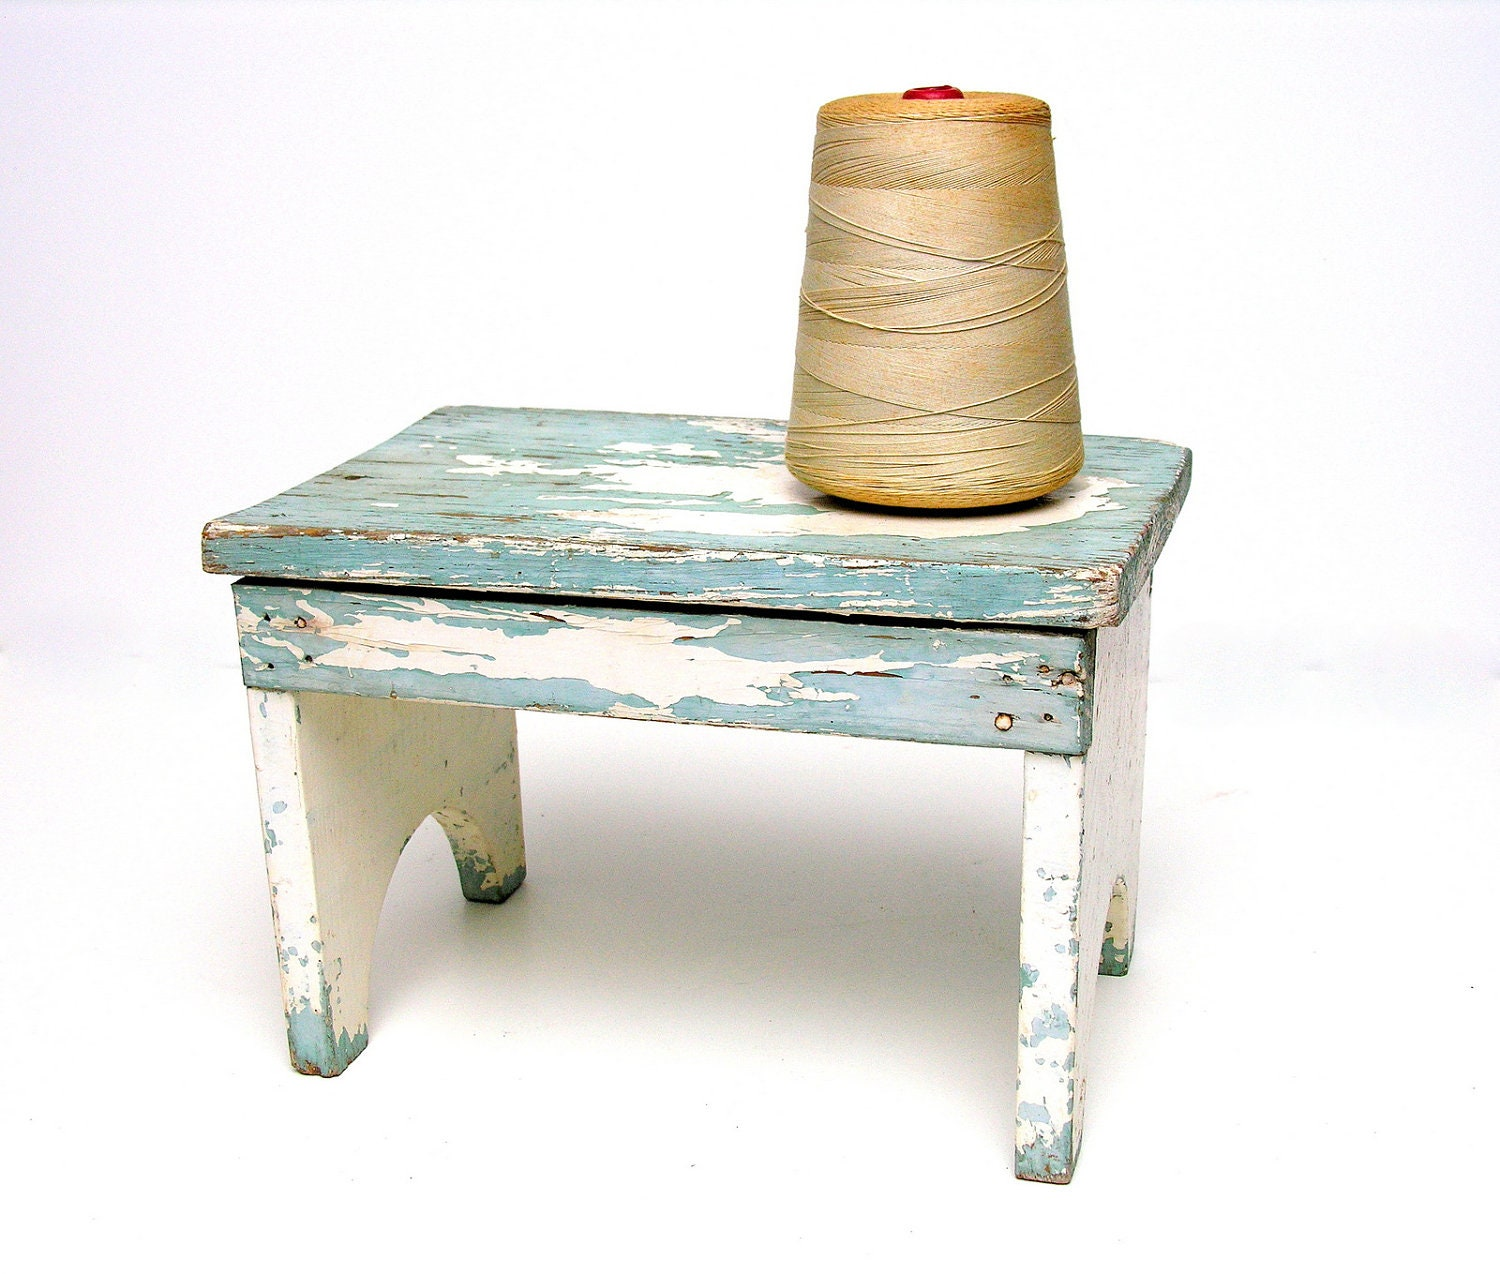 Antique rustic step stool riser wooden bench small primitive